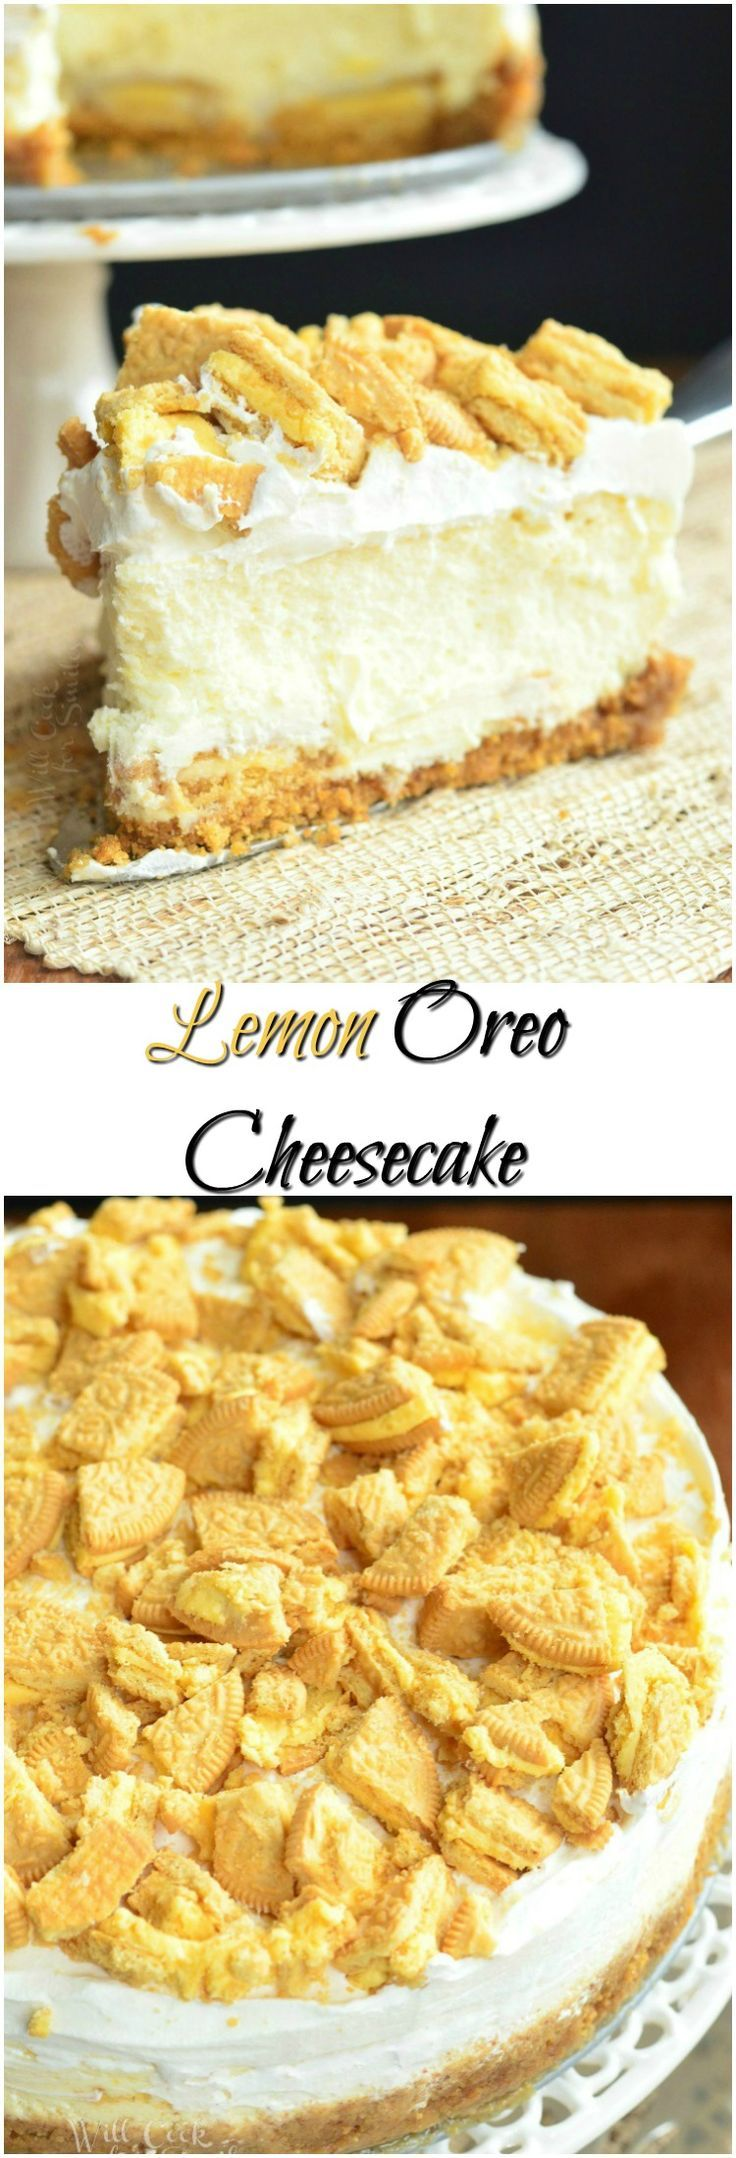 Lemon Oreo Cheesecake. Elegant, gentle, and just heavenly cheesecake, made with Lemon Oreo Cookies, lemon cheesecake filling and whipped topping. from willcookforsmiles...